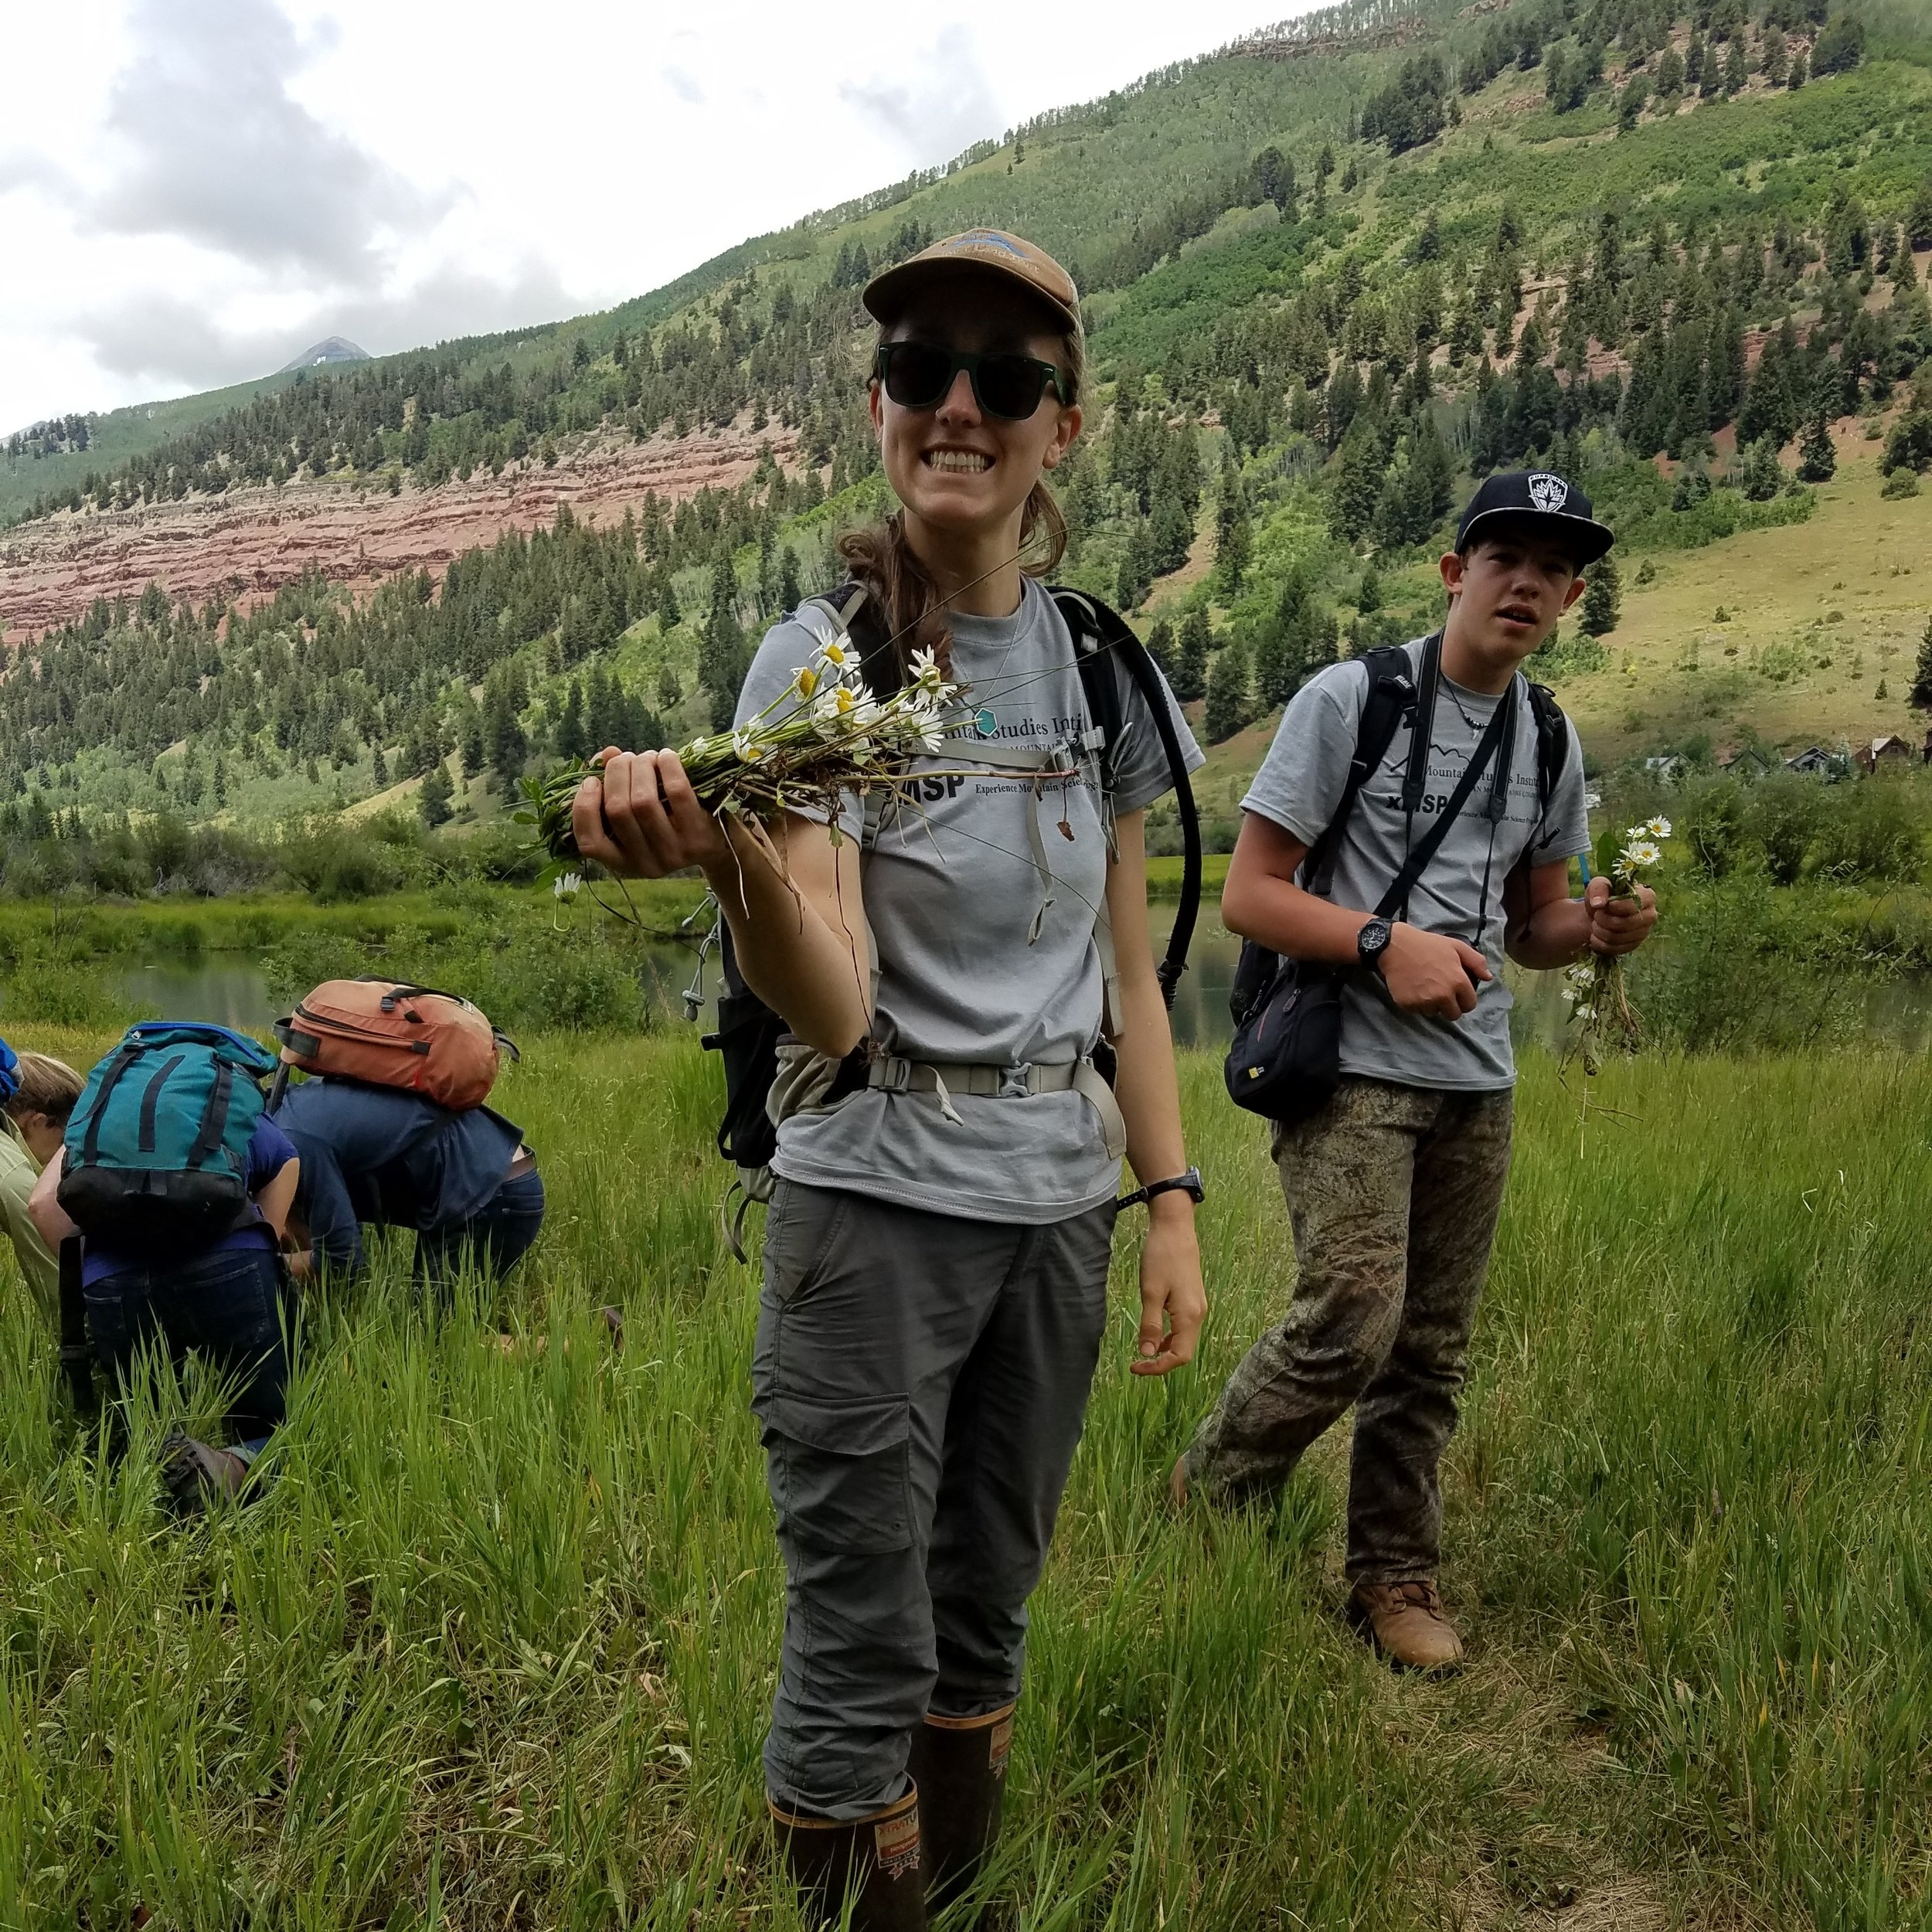 xMSP students and MSI staff mentors tackle a patch of Oxeye daisies on the Telluride Valley Floor.